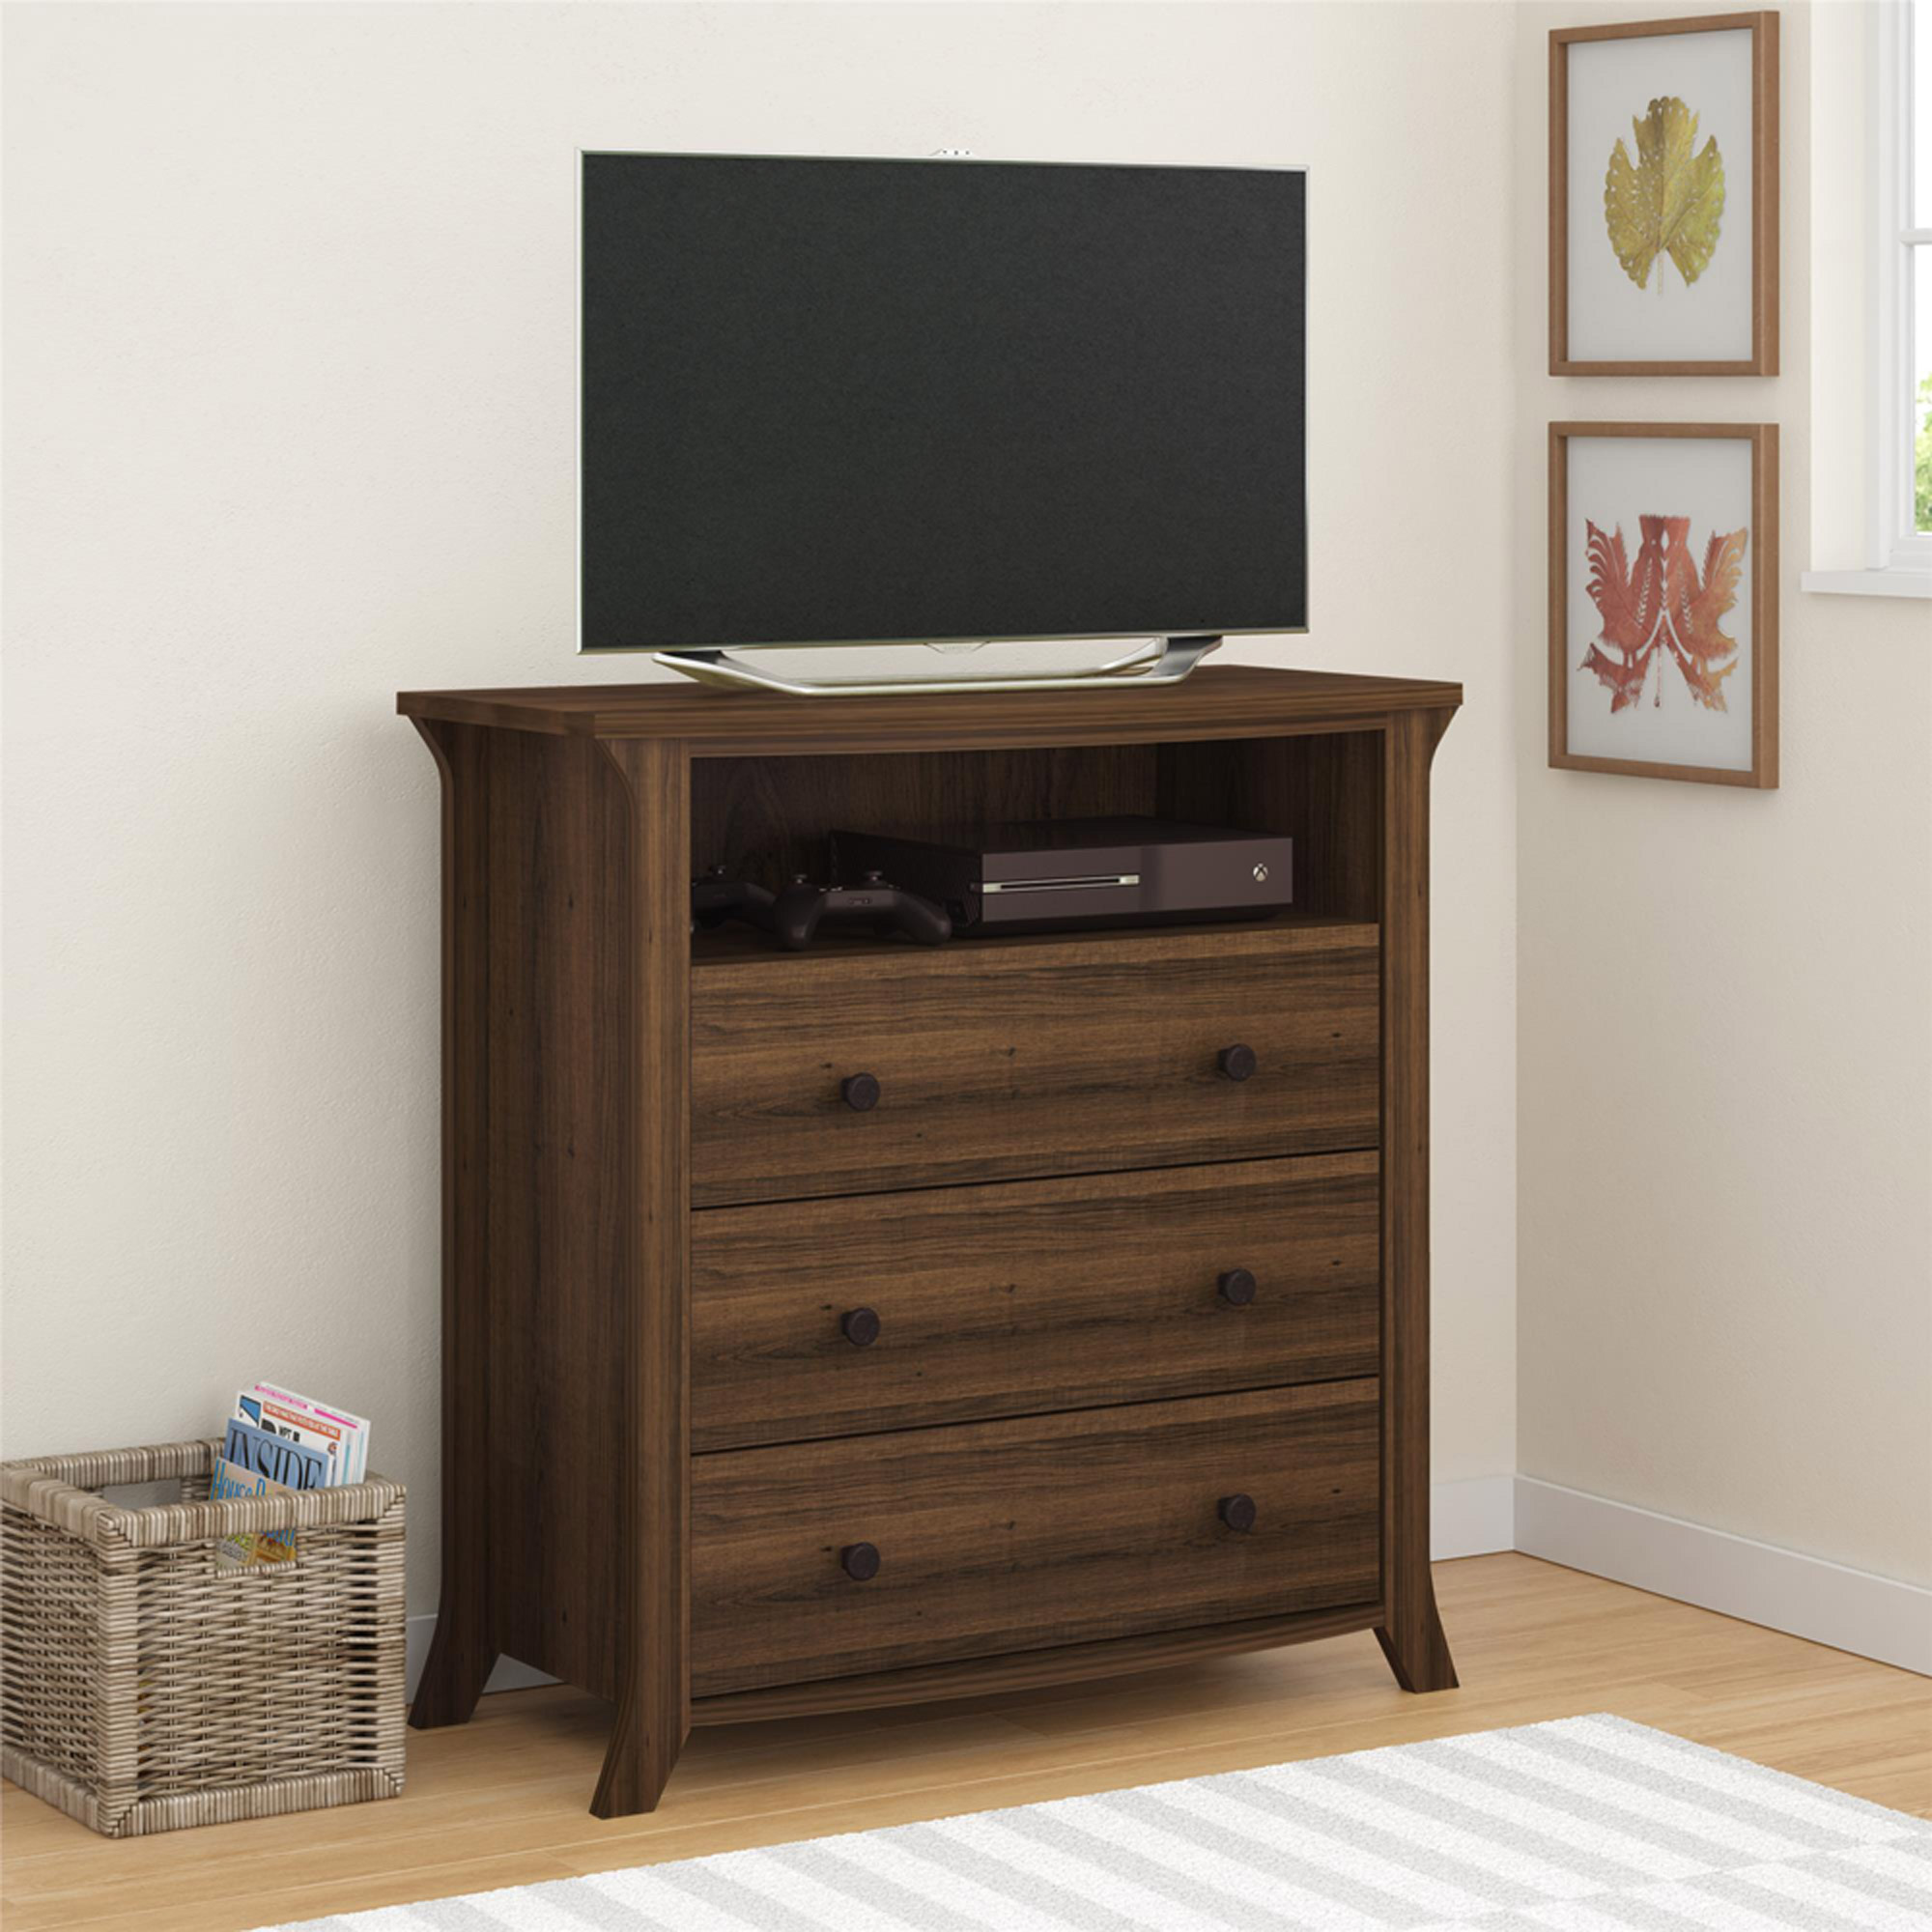 Oakridge 3-Drawer Media Dresser by Altra, Homestead Oak